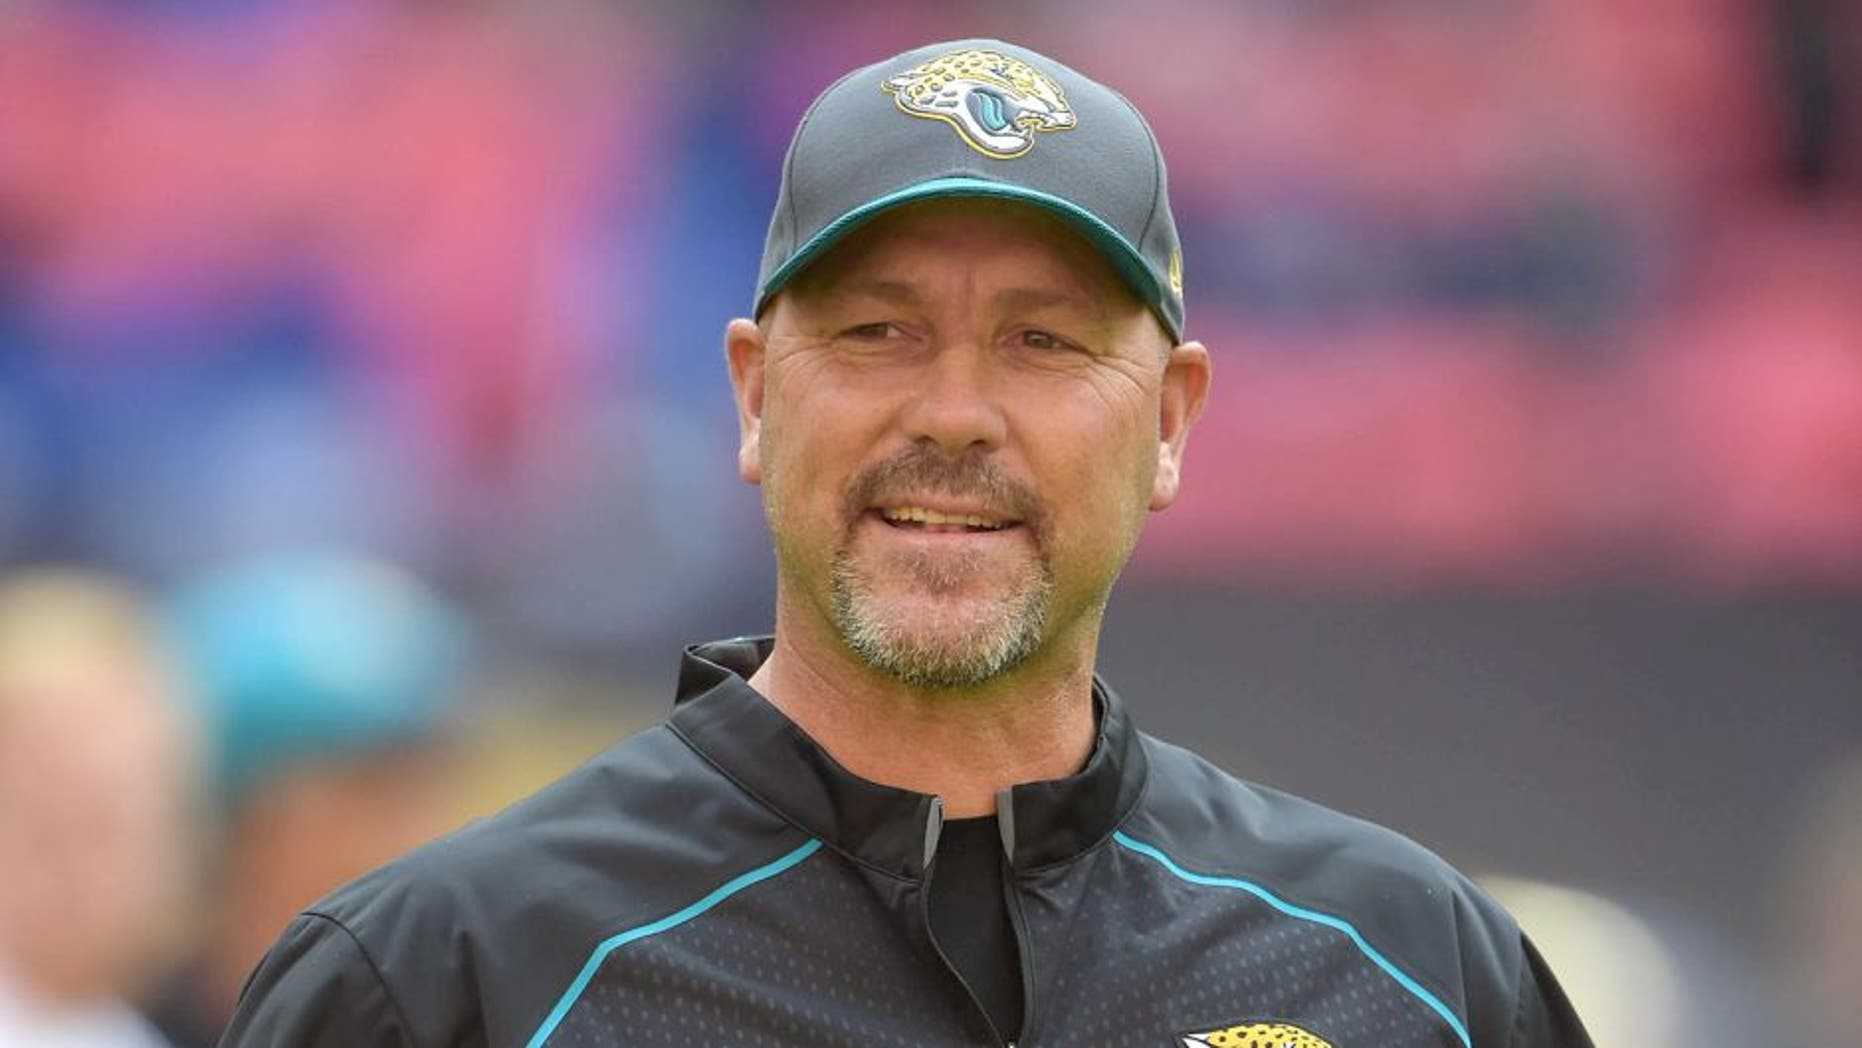 Oct 25, 2015; London, United Kingdom; Jacksonville Jaguars coach Gus Bradley reacts against the Buffalo Bills during NFL International Series game at Wembley Stadium. Mandatory Credit: Kirby Lee-USA TODAY Sports